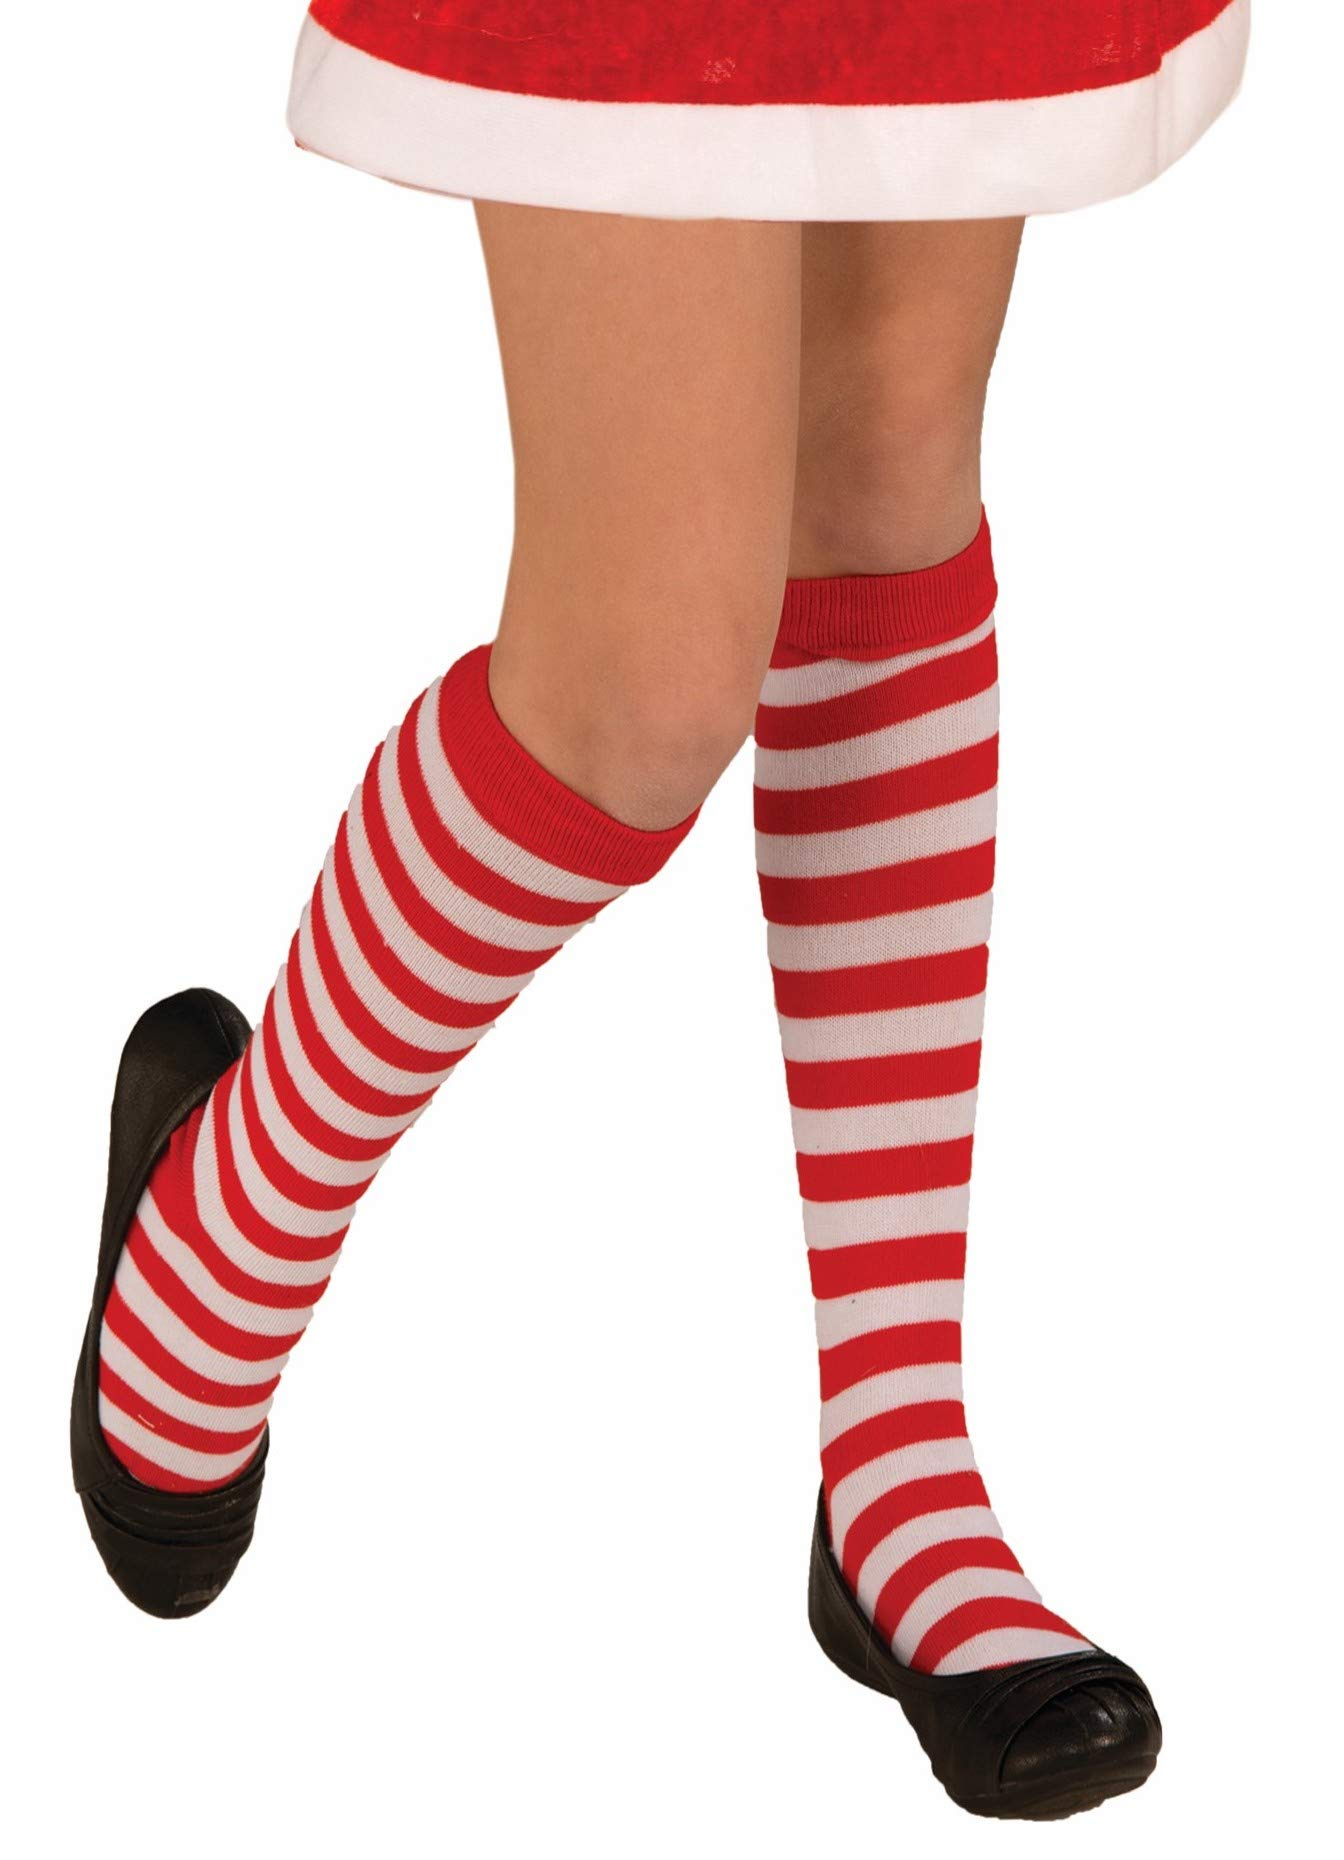 Children's Red and White Striped Socks